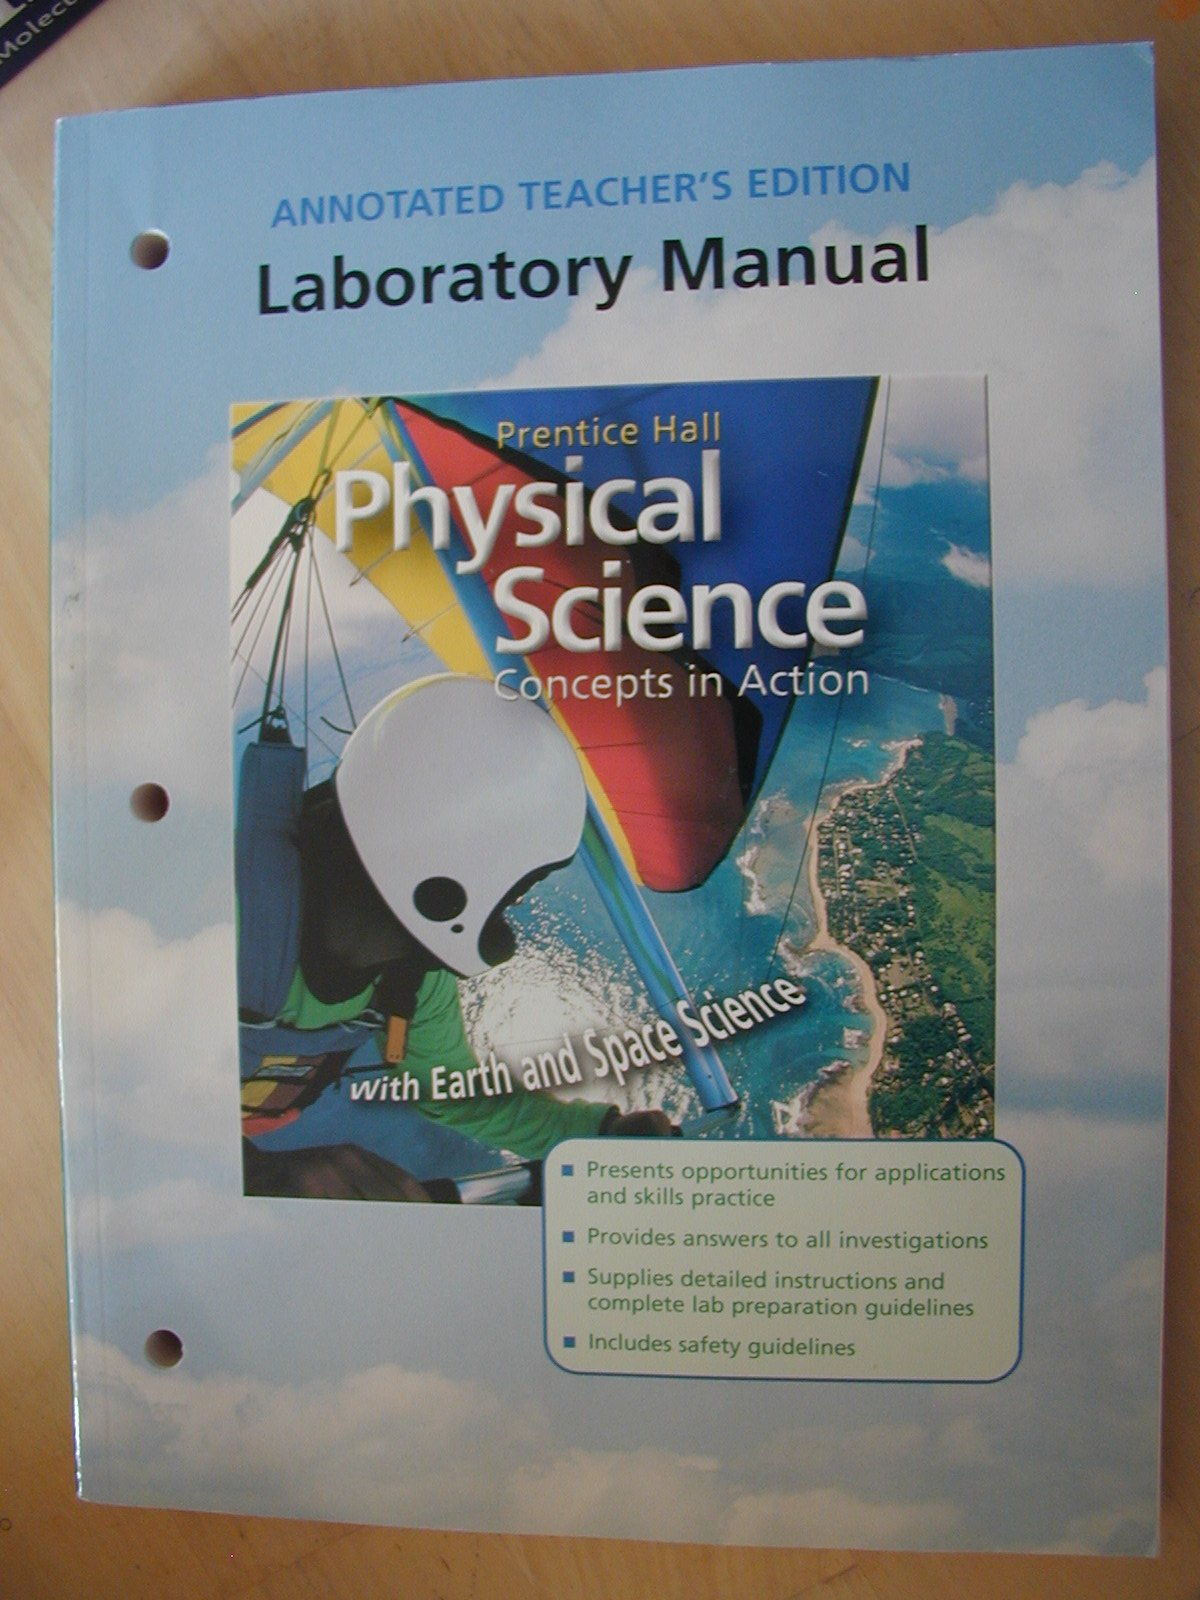 Worksheets Prentice Hall Physical Science Worksheets prentice hall physical science concepts in action with earth and space laboratory manual annotated teachers editi